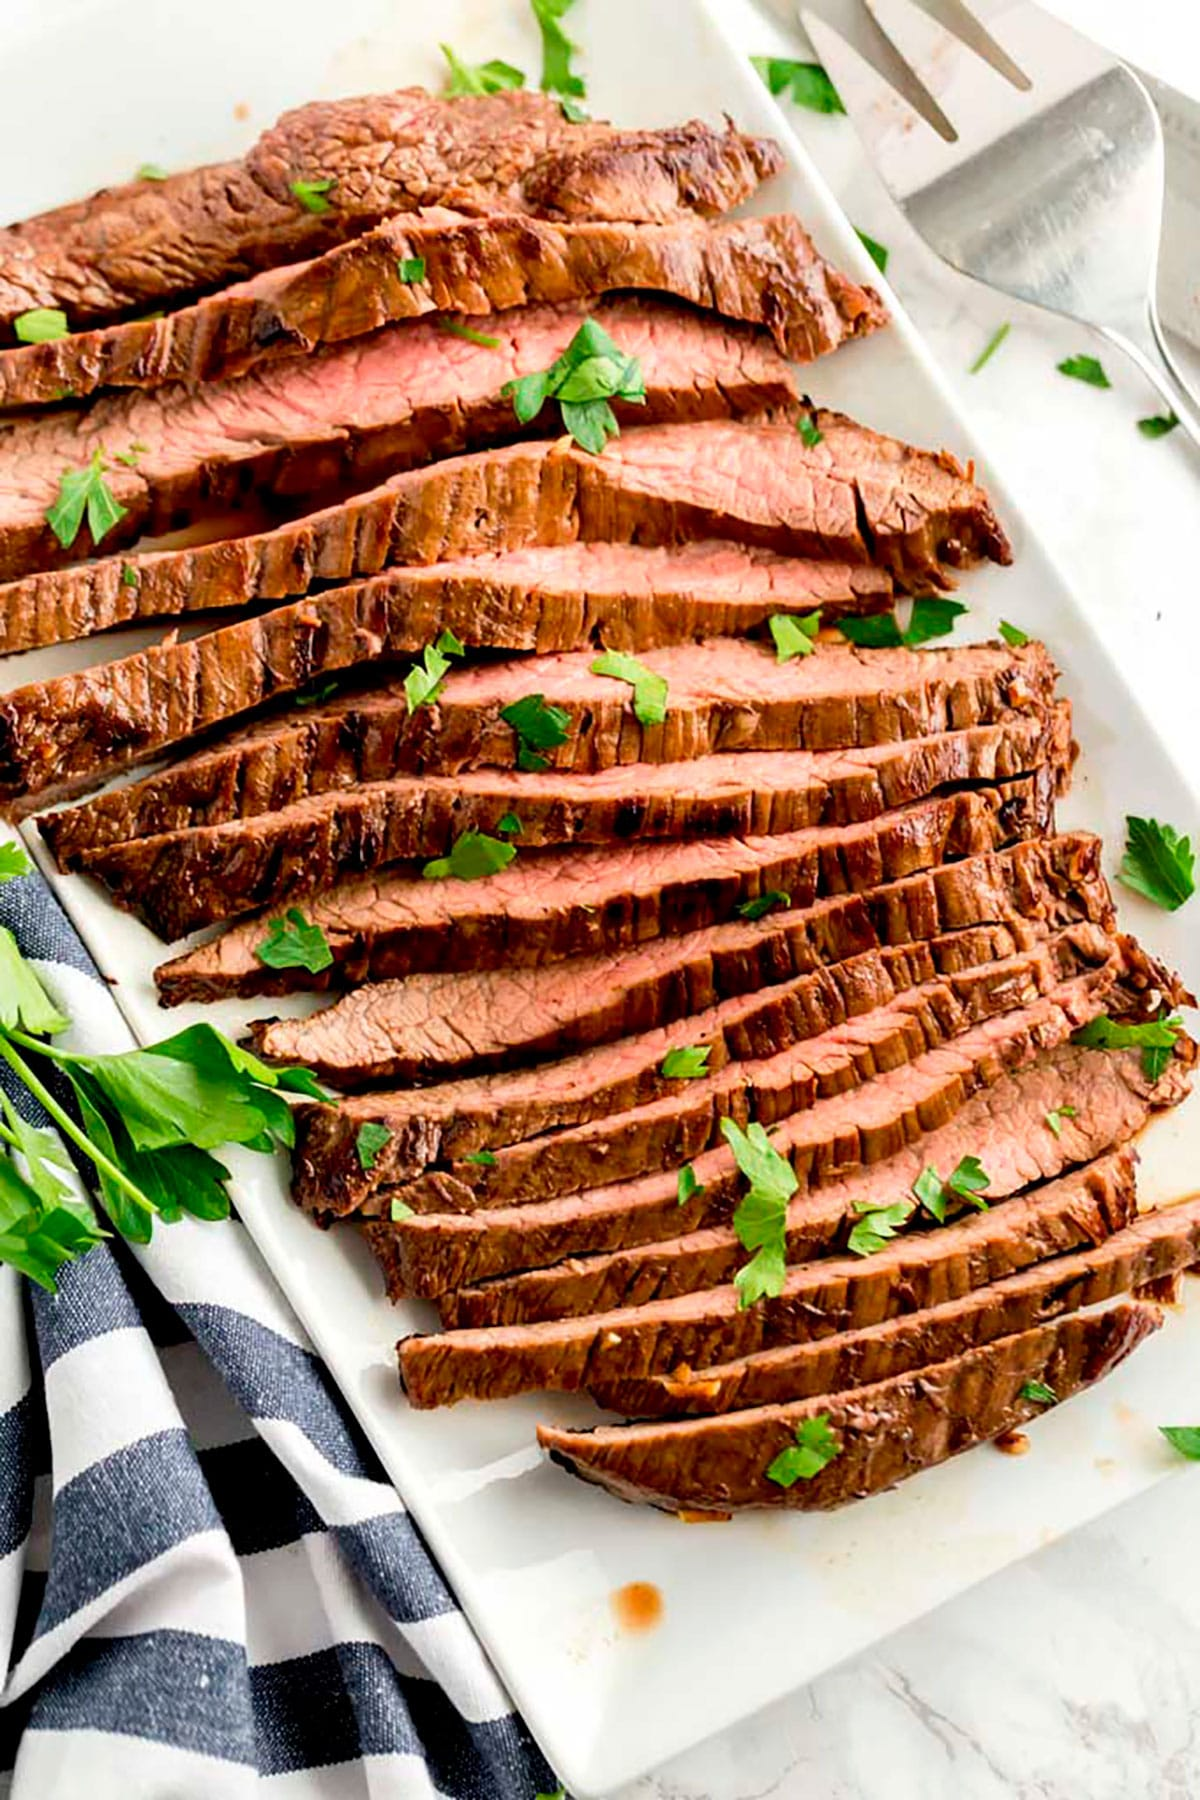 Sliced Juicy and tender London Broil fank steak on a white platter.